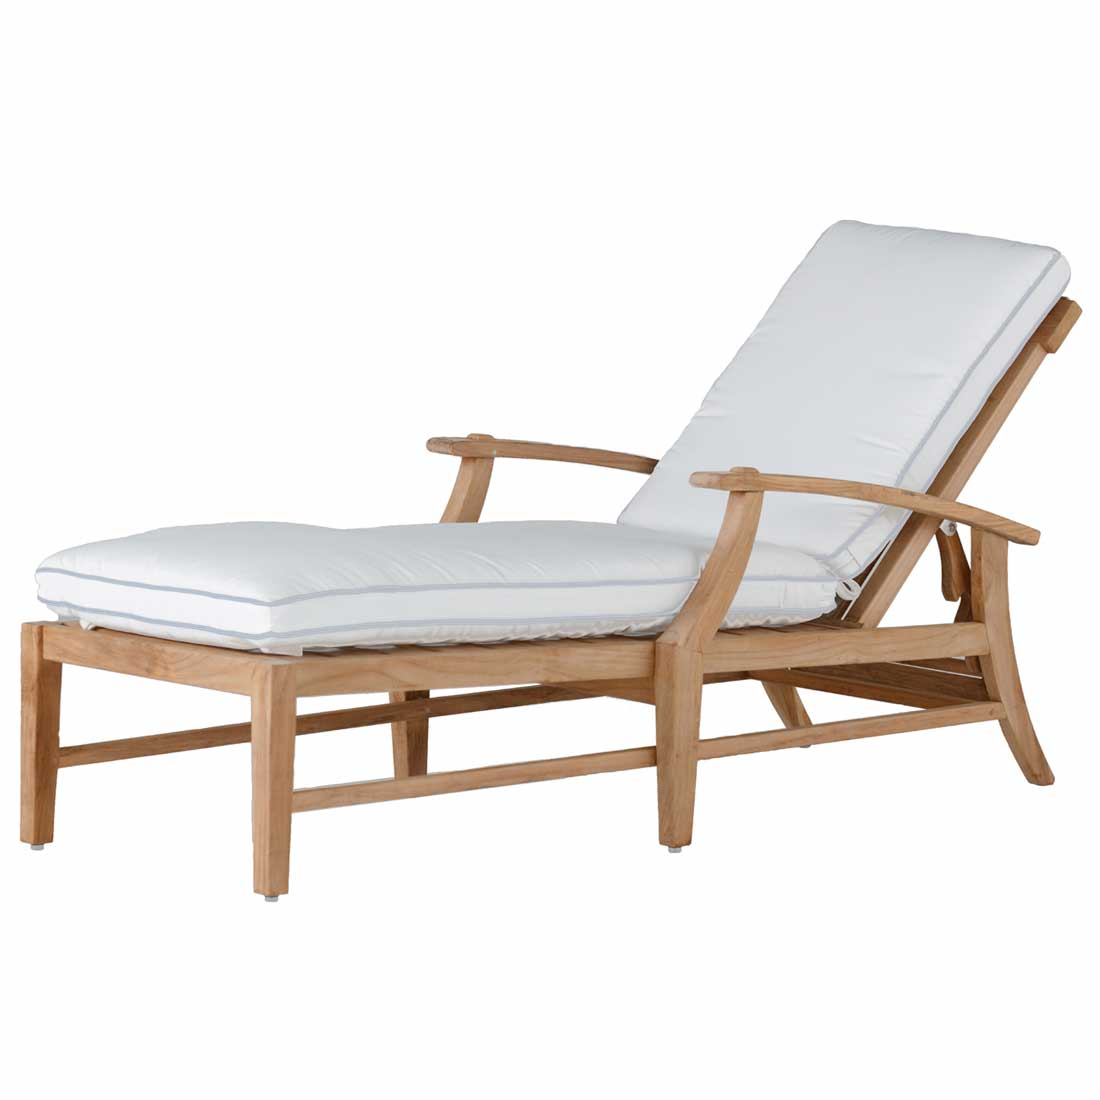 Teak Chaise Lounge Chairs Croquet Teak Chaise Summer Classics